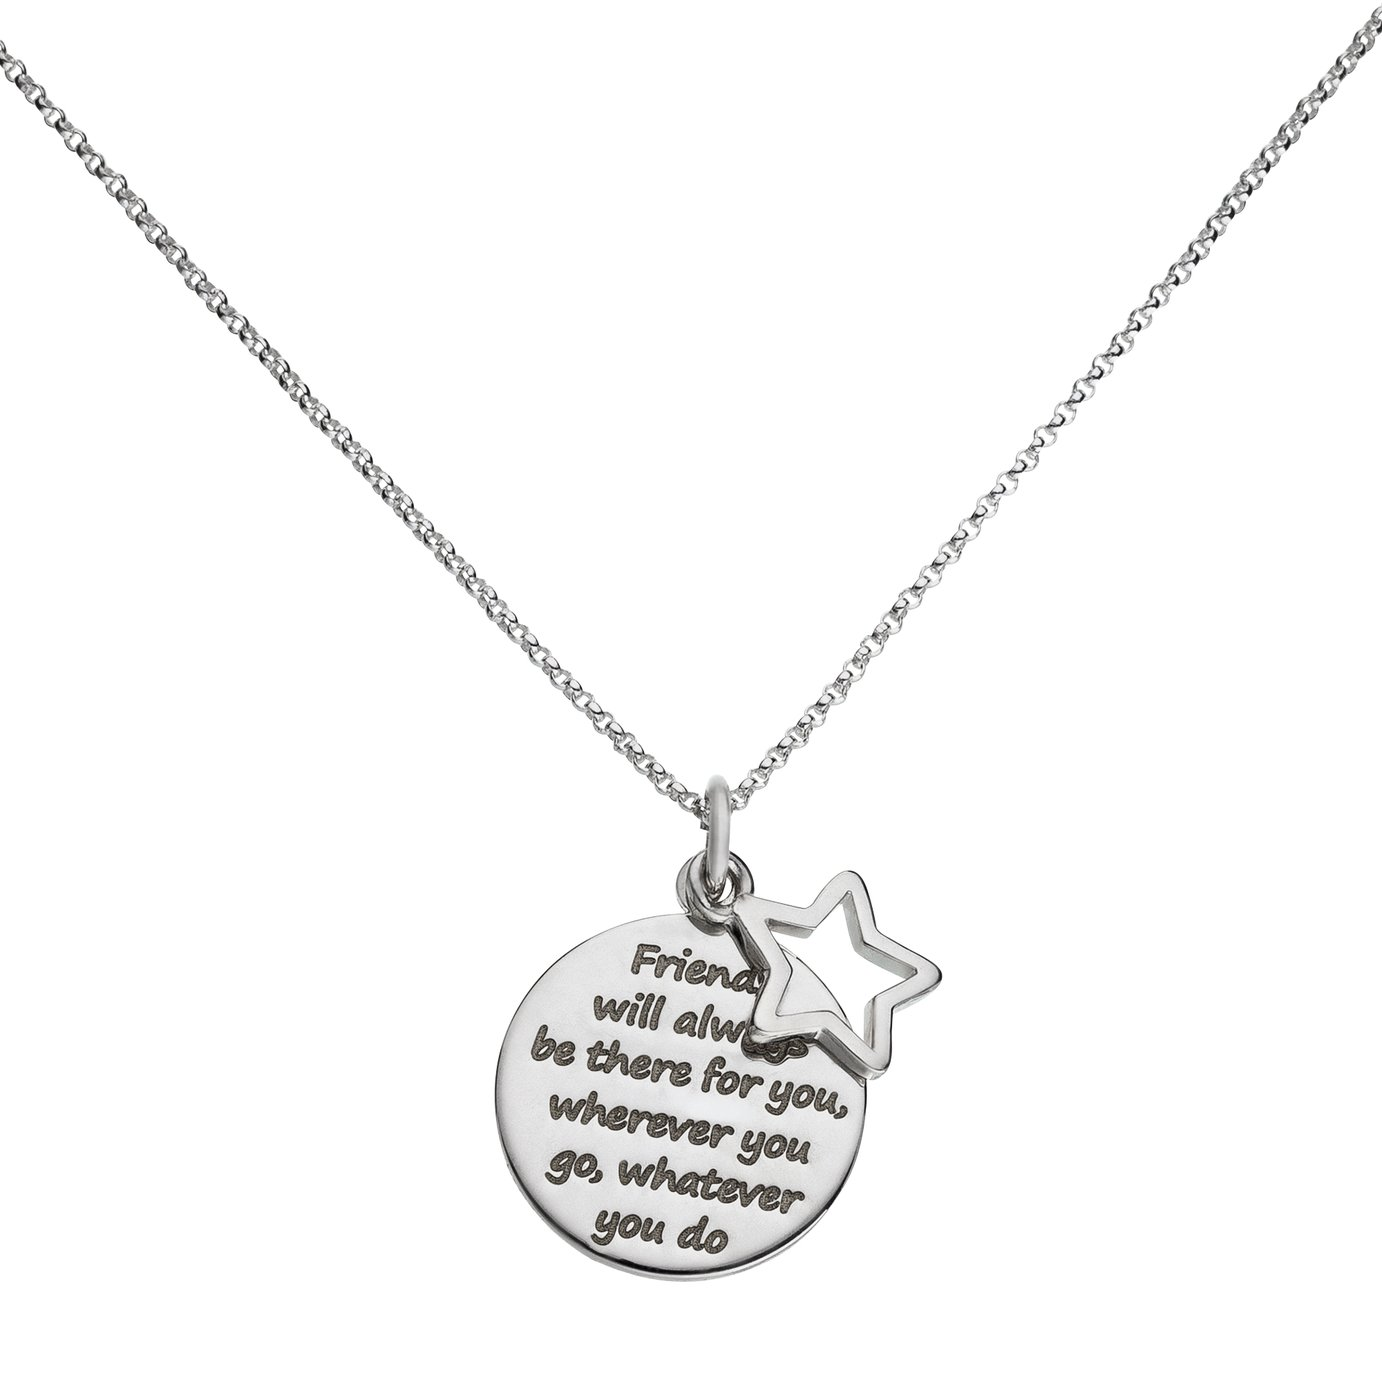 Image of From the Heart - Sterling Silver - Friendship Pendant.